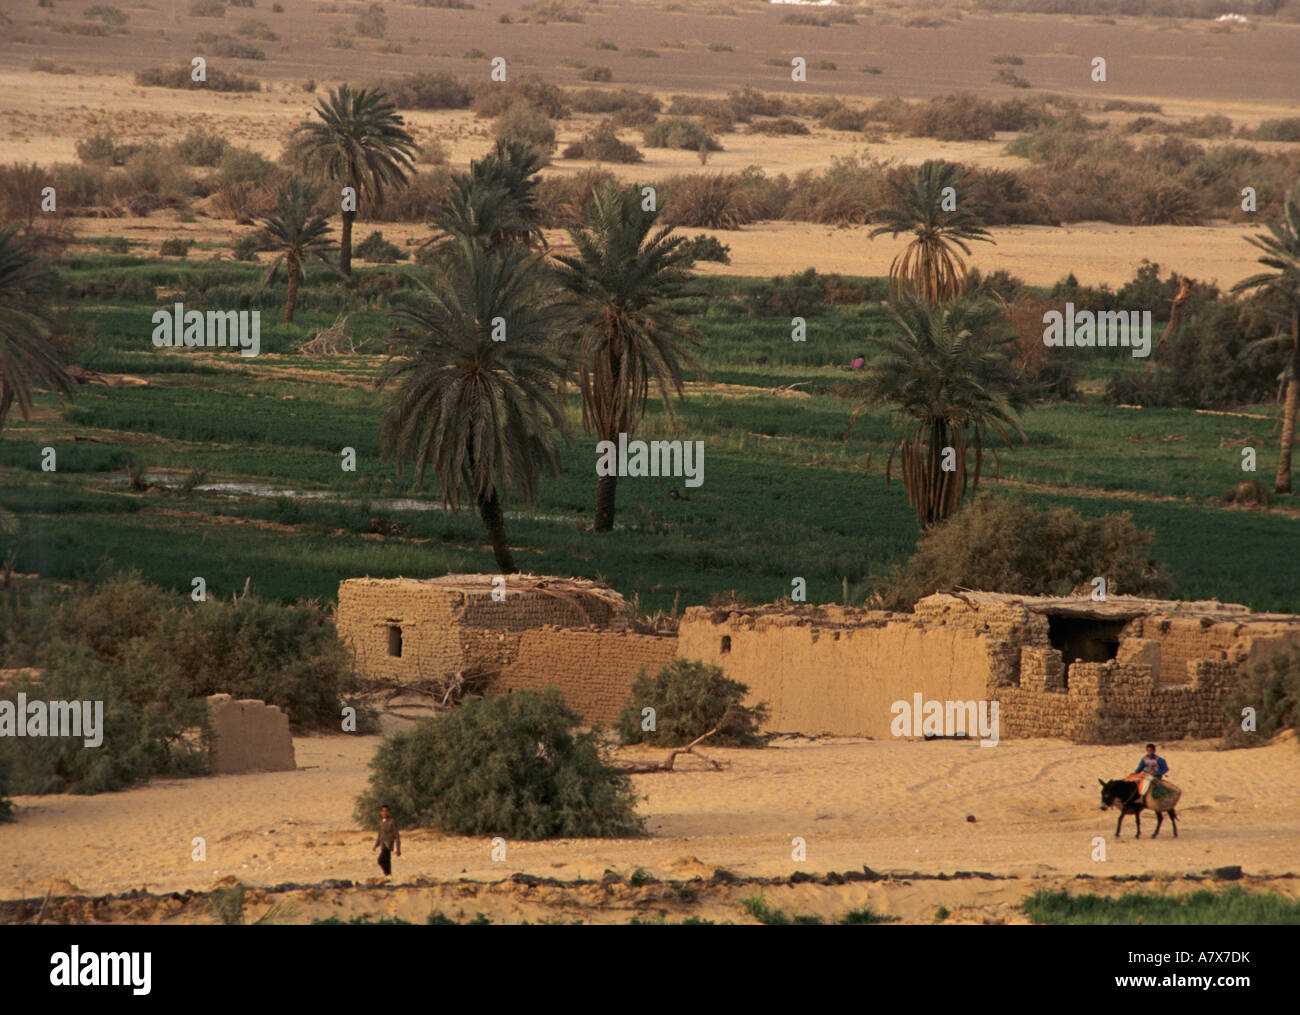 Egypt, Modern farm in El Bawati, capital of Bahariya Oasis ... - photo#38